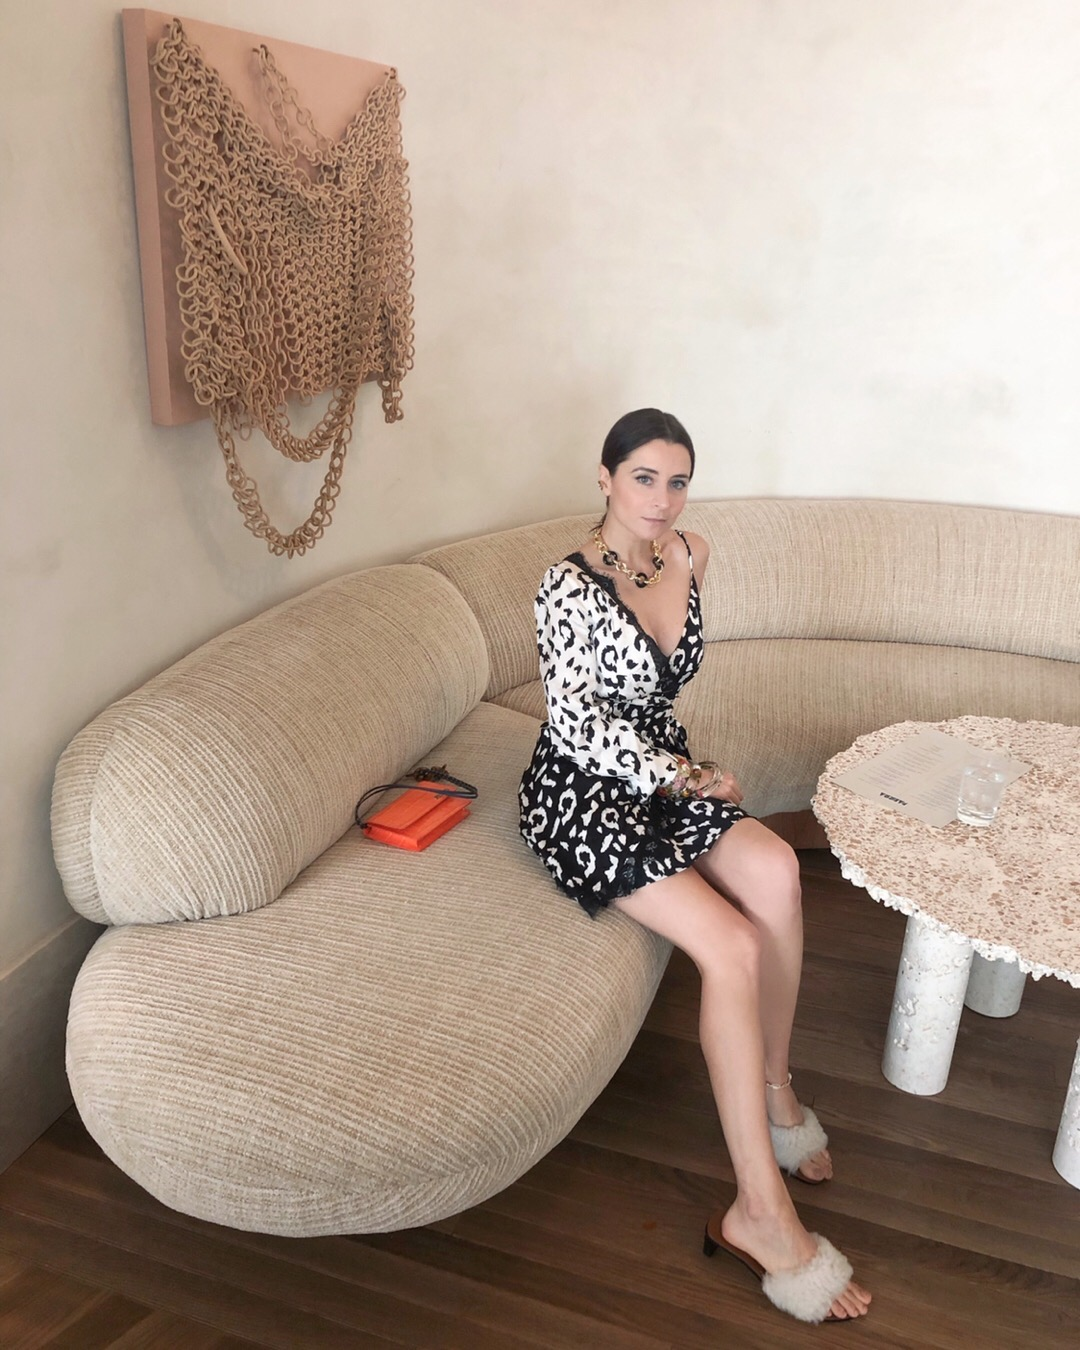 Hotel Proper Santa Monica. A Parisian Girls Guide To Los Angeles Julia Comil French fashion blogger in Los Angeles